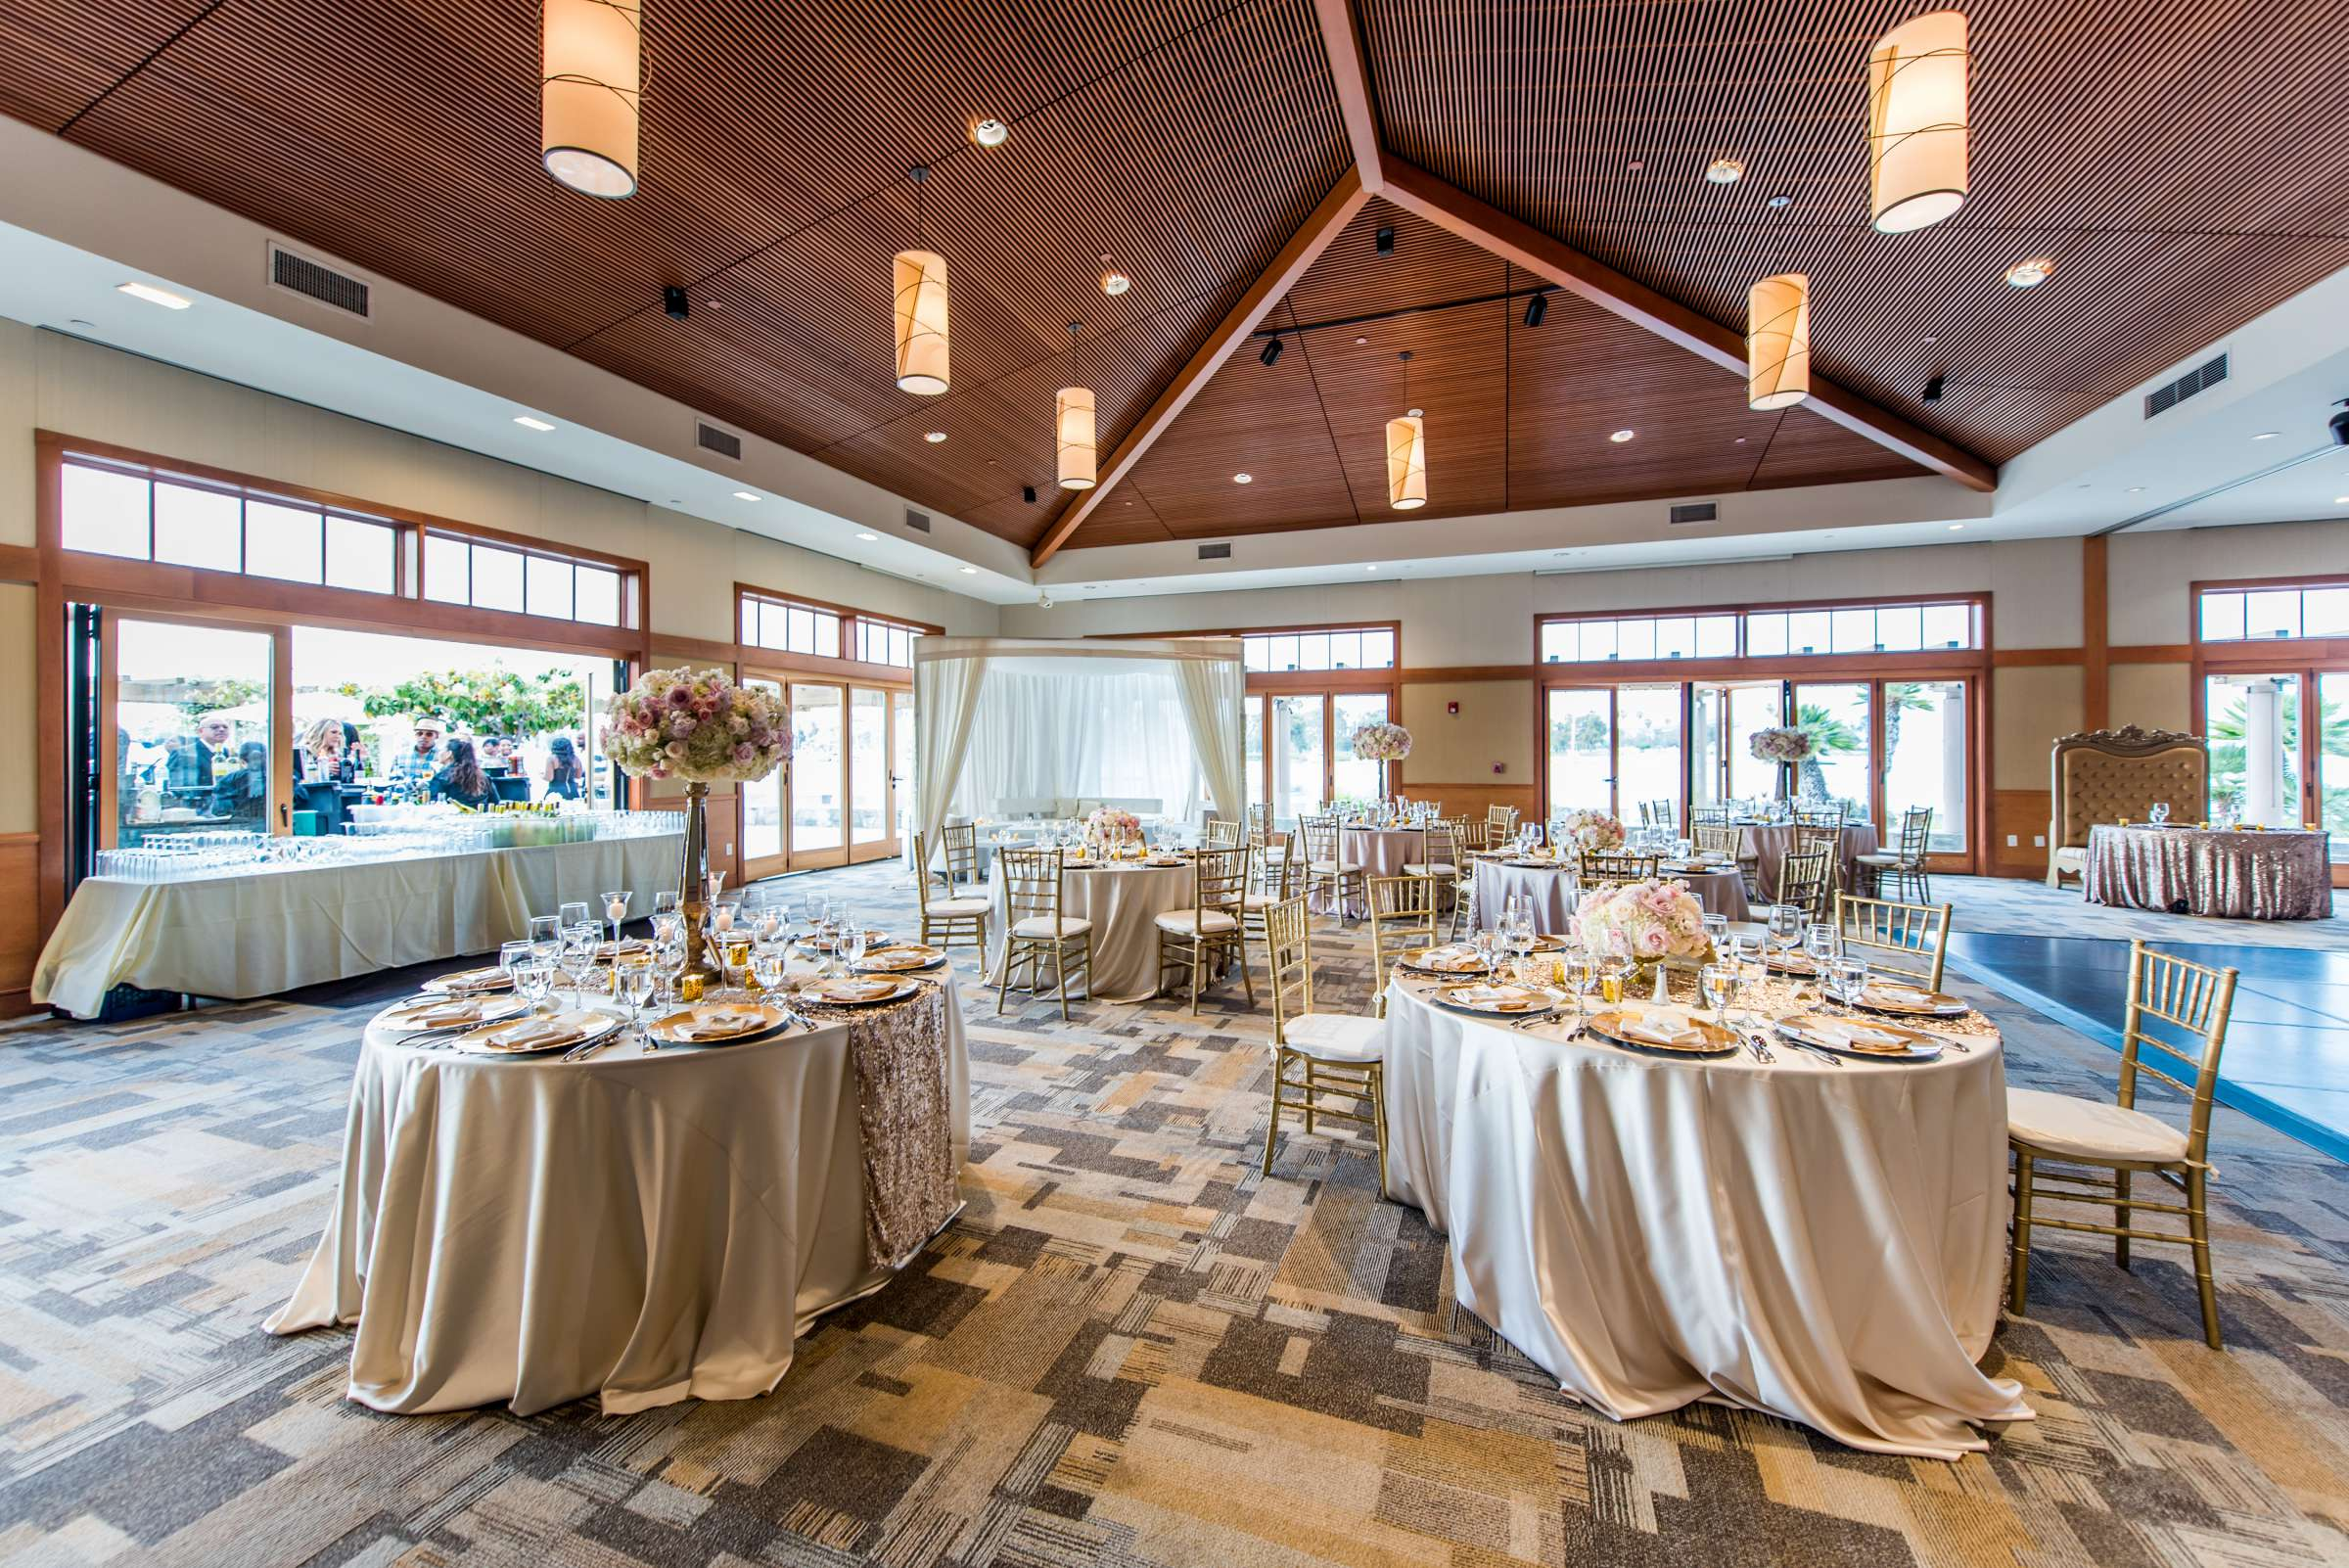 Coronado Community Center Wedding coordinated by First Comes Love Weddings & Events, Nikia and Charles Wedding Photo #68 by True Photography